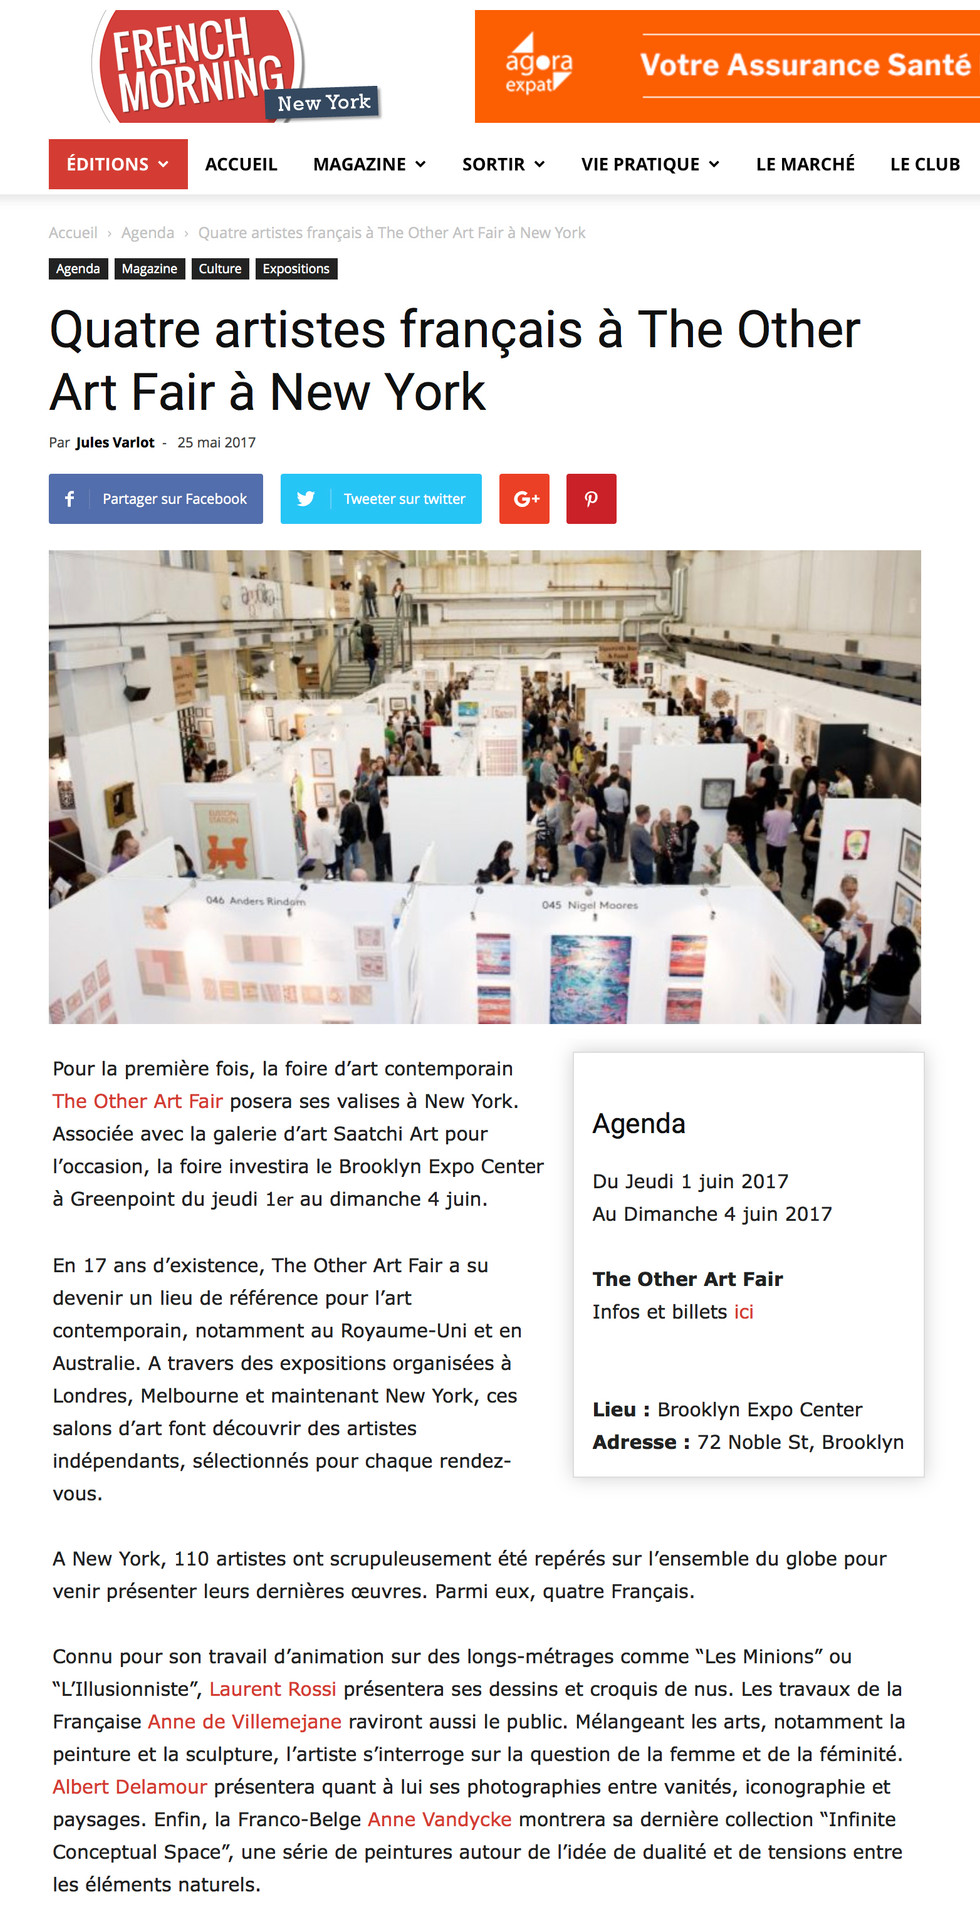 French Morning - The Other Art Fair